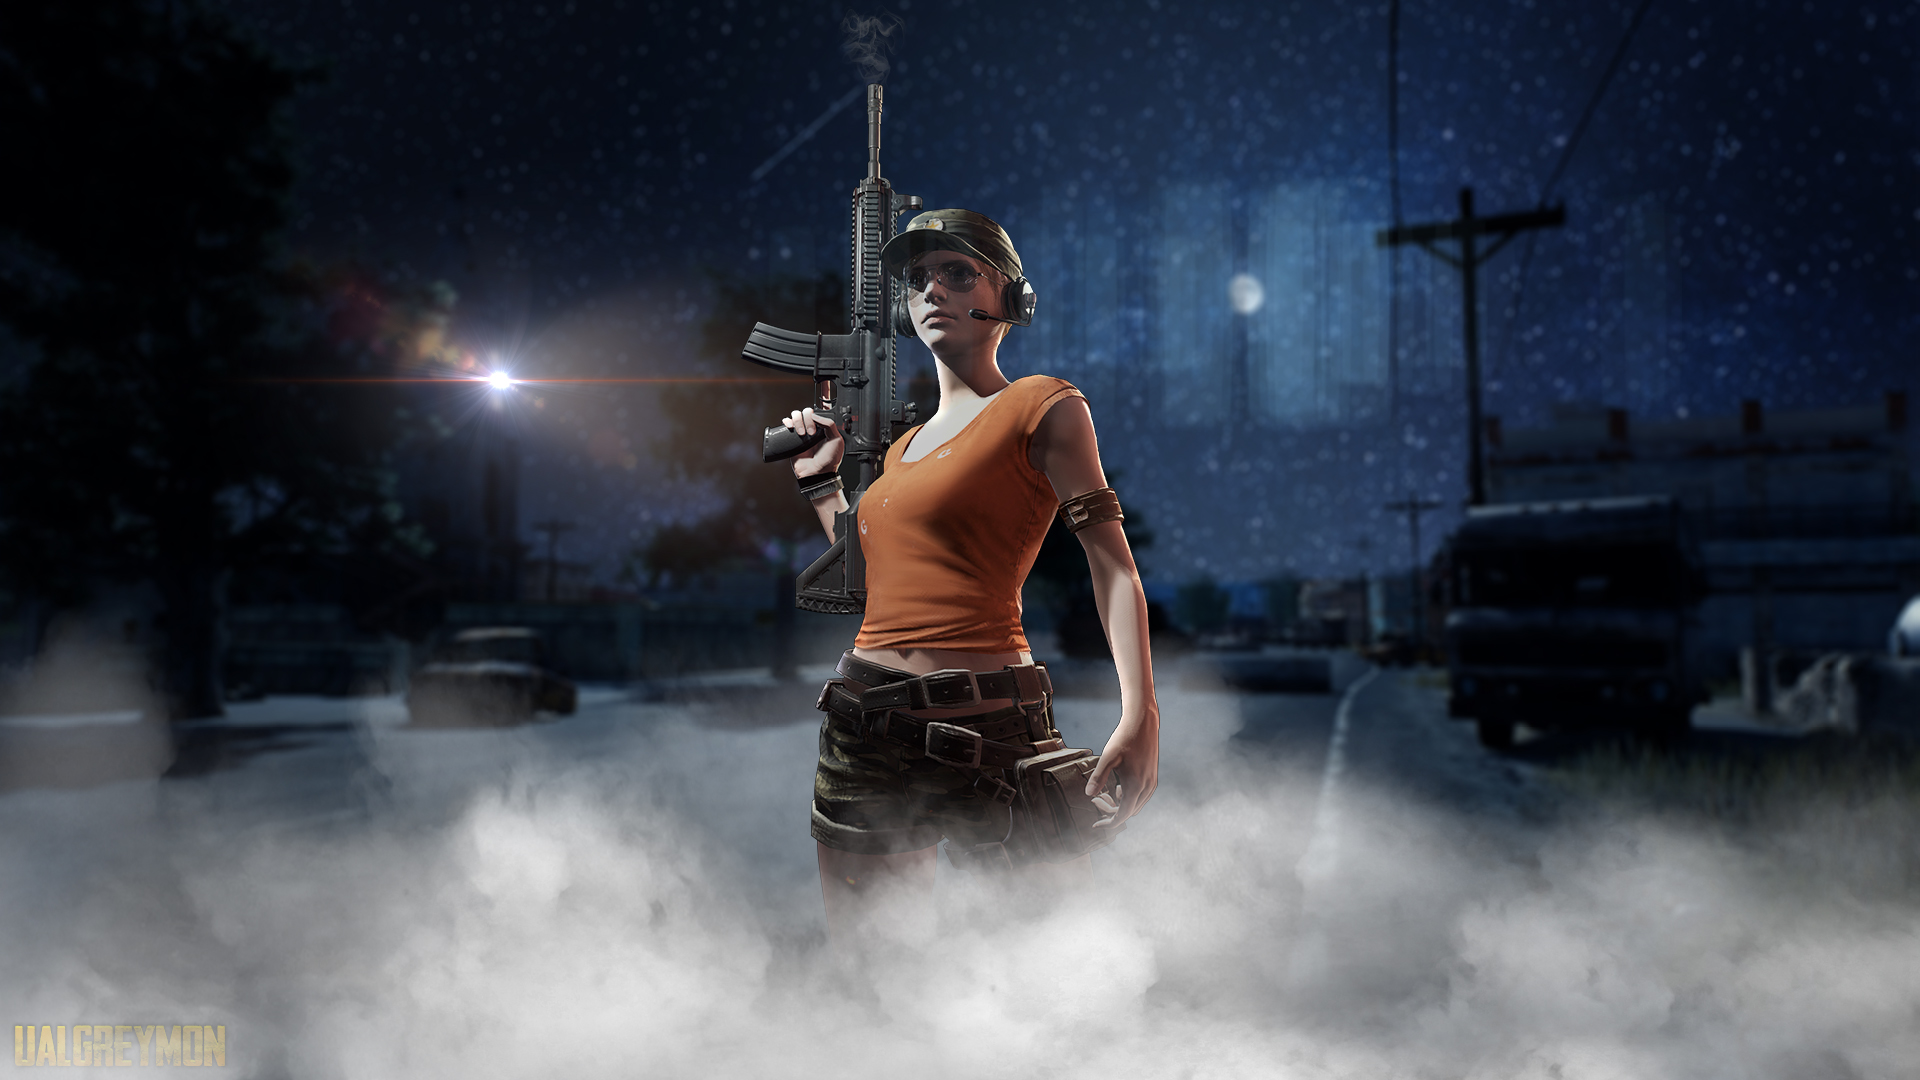 Hd 1080p Pubg Wallpapers Pubattlegrounds: Pubg Night, HD Games, 4k Wallpapers, Images, Backgrounds